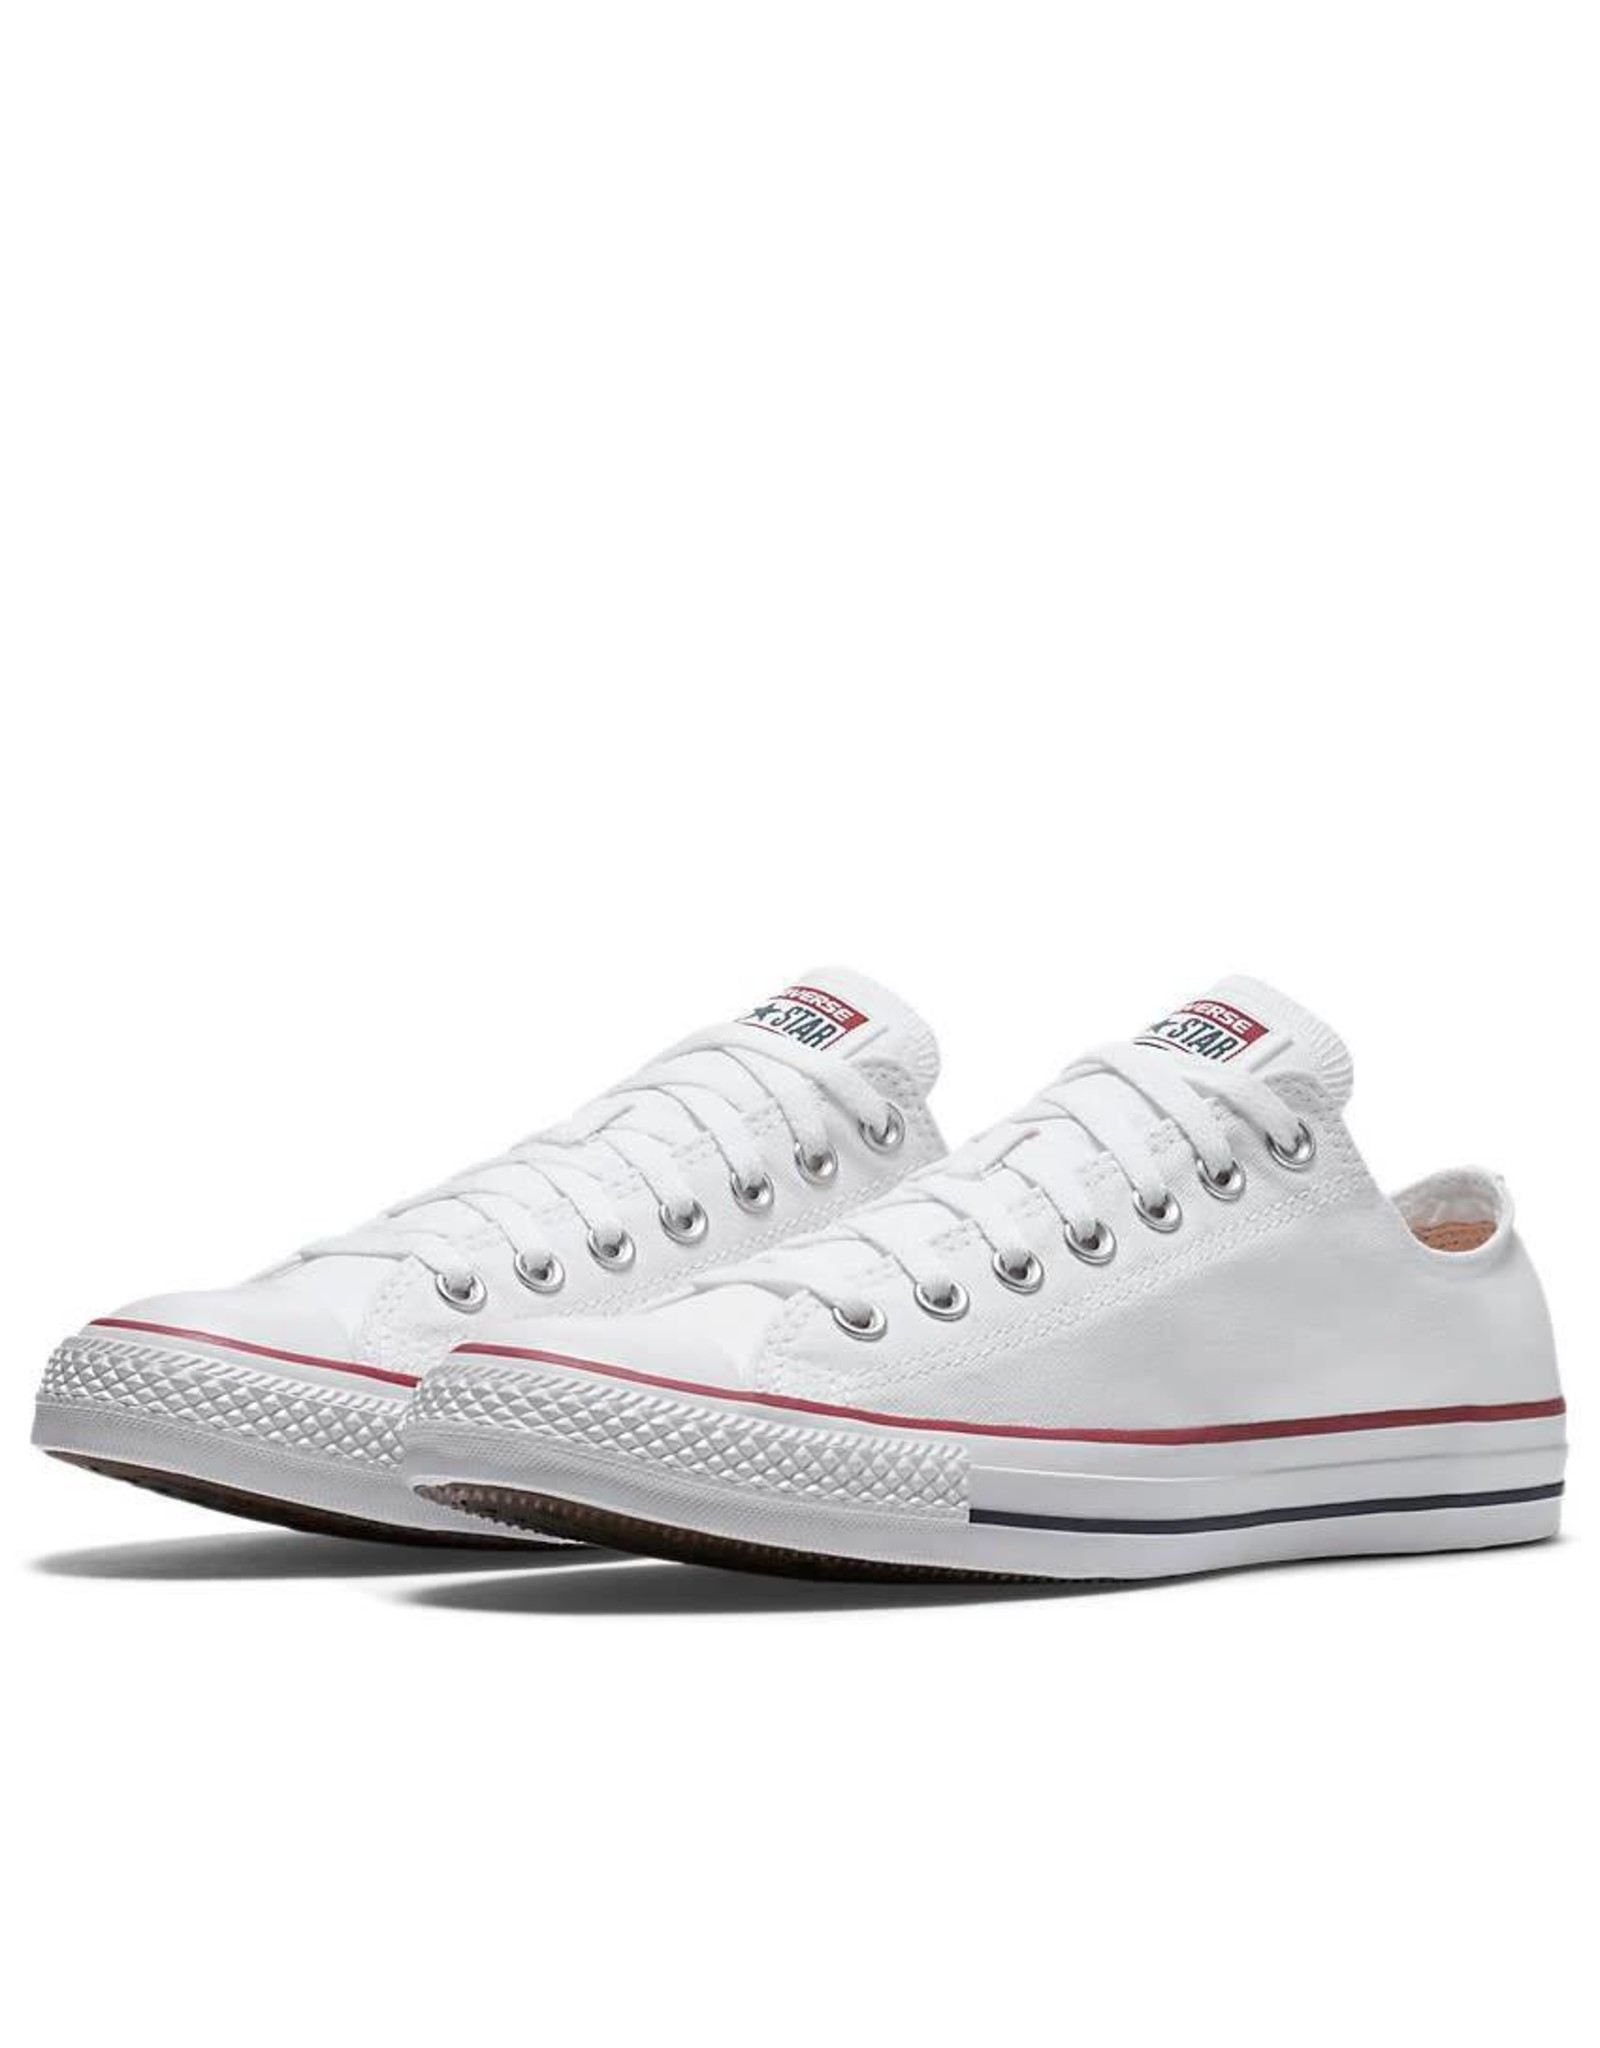 CONVERSE CHUCK TAYLOR OX OPTICAL WHITE C2OP-M7652C